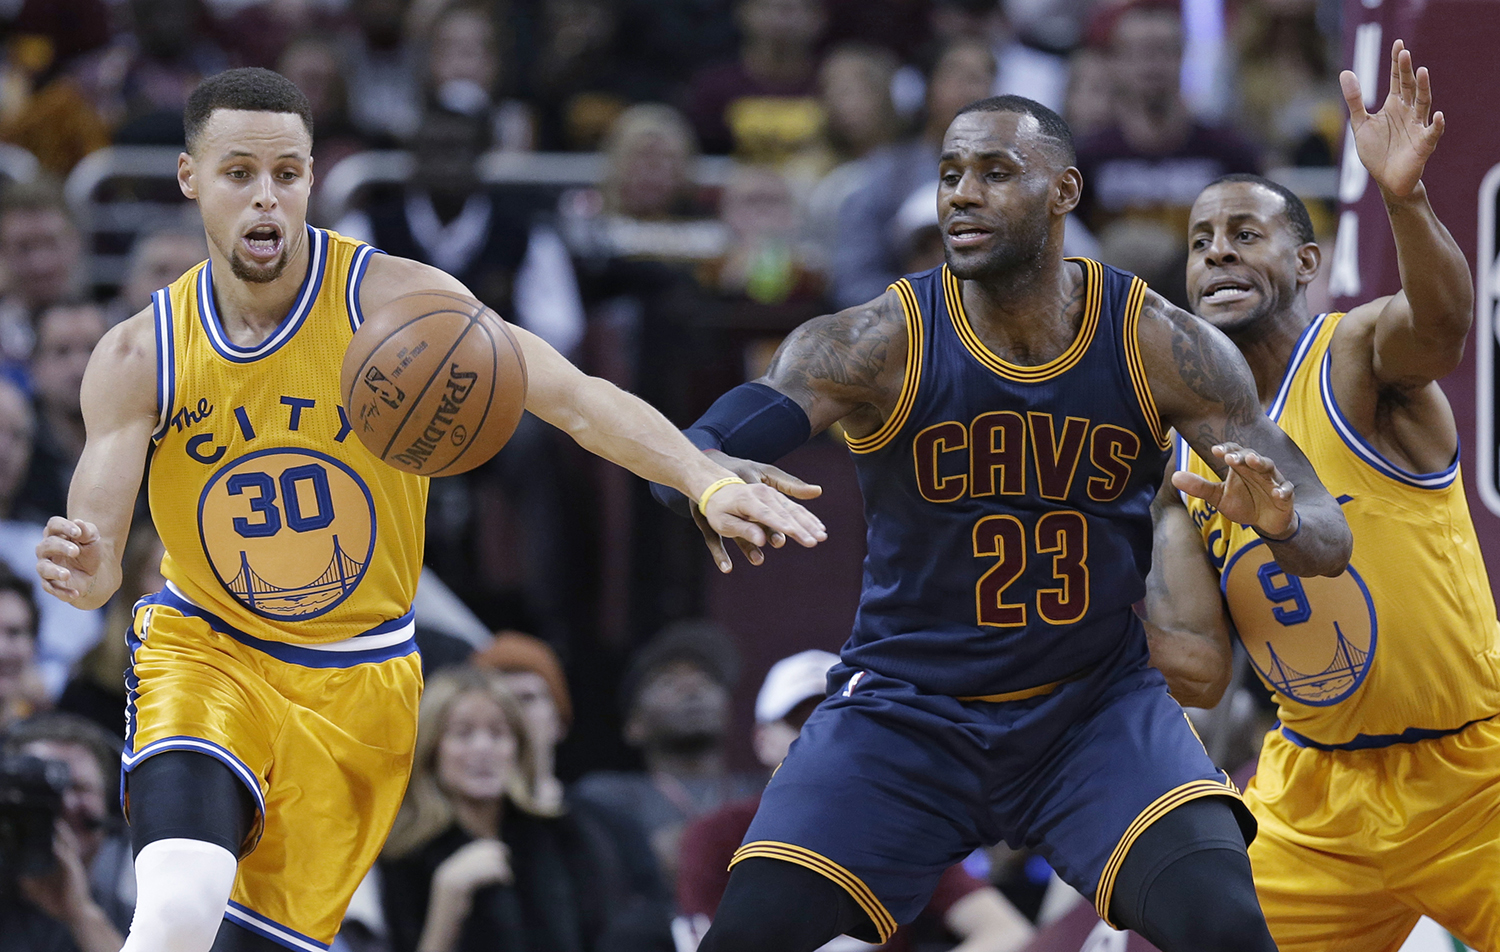 Golden State  Warriors ' Stephen Curry (30) knocks the ball loose from Cleveland  Cavaliers ' LeBron James (23) in the first half of an NBA basketball game, Monday, Jan. 18, 2016, in Cleveland. Andre Iguodala (9) is at right. (AP Photo/Tony Dejak)